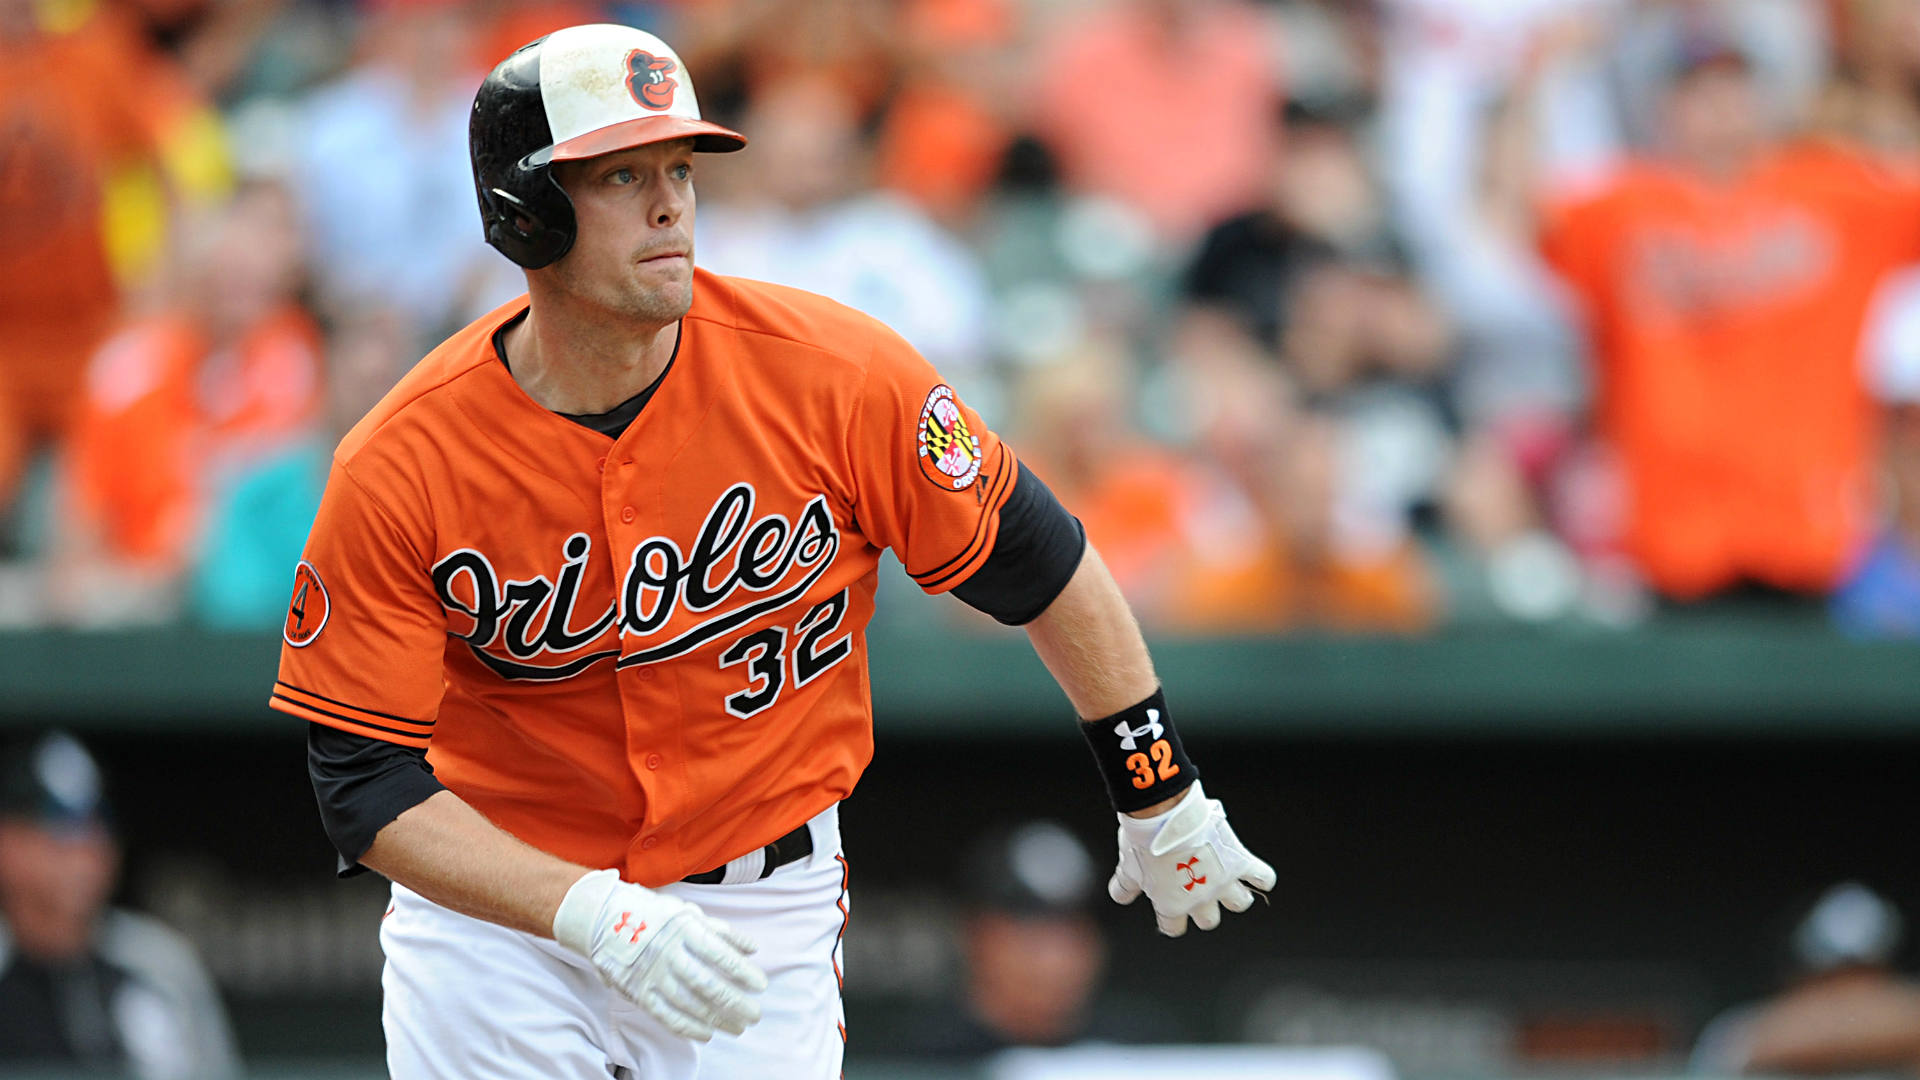 Catcher rankings: Winning with Wieters